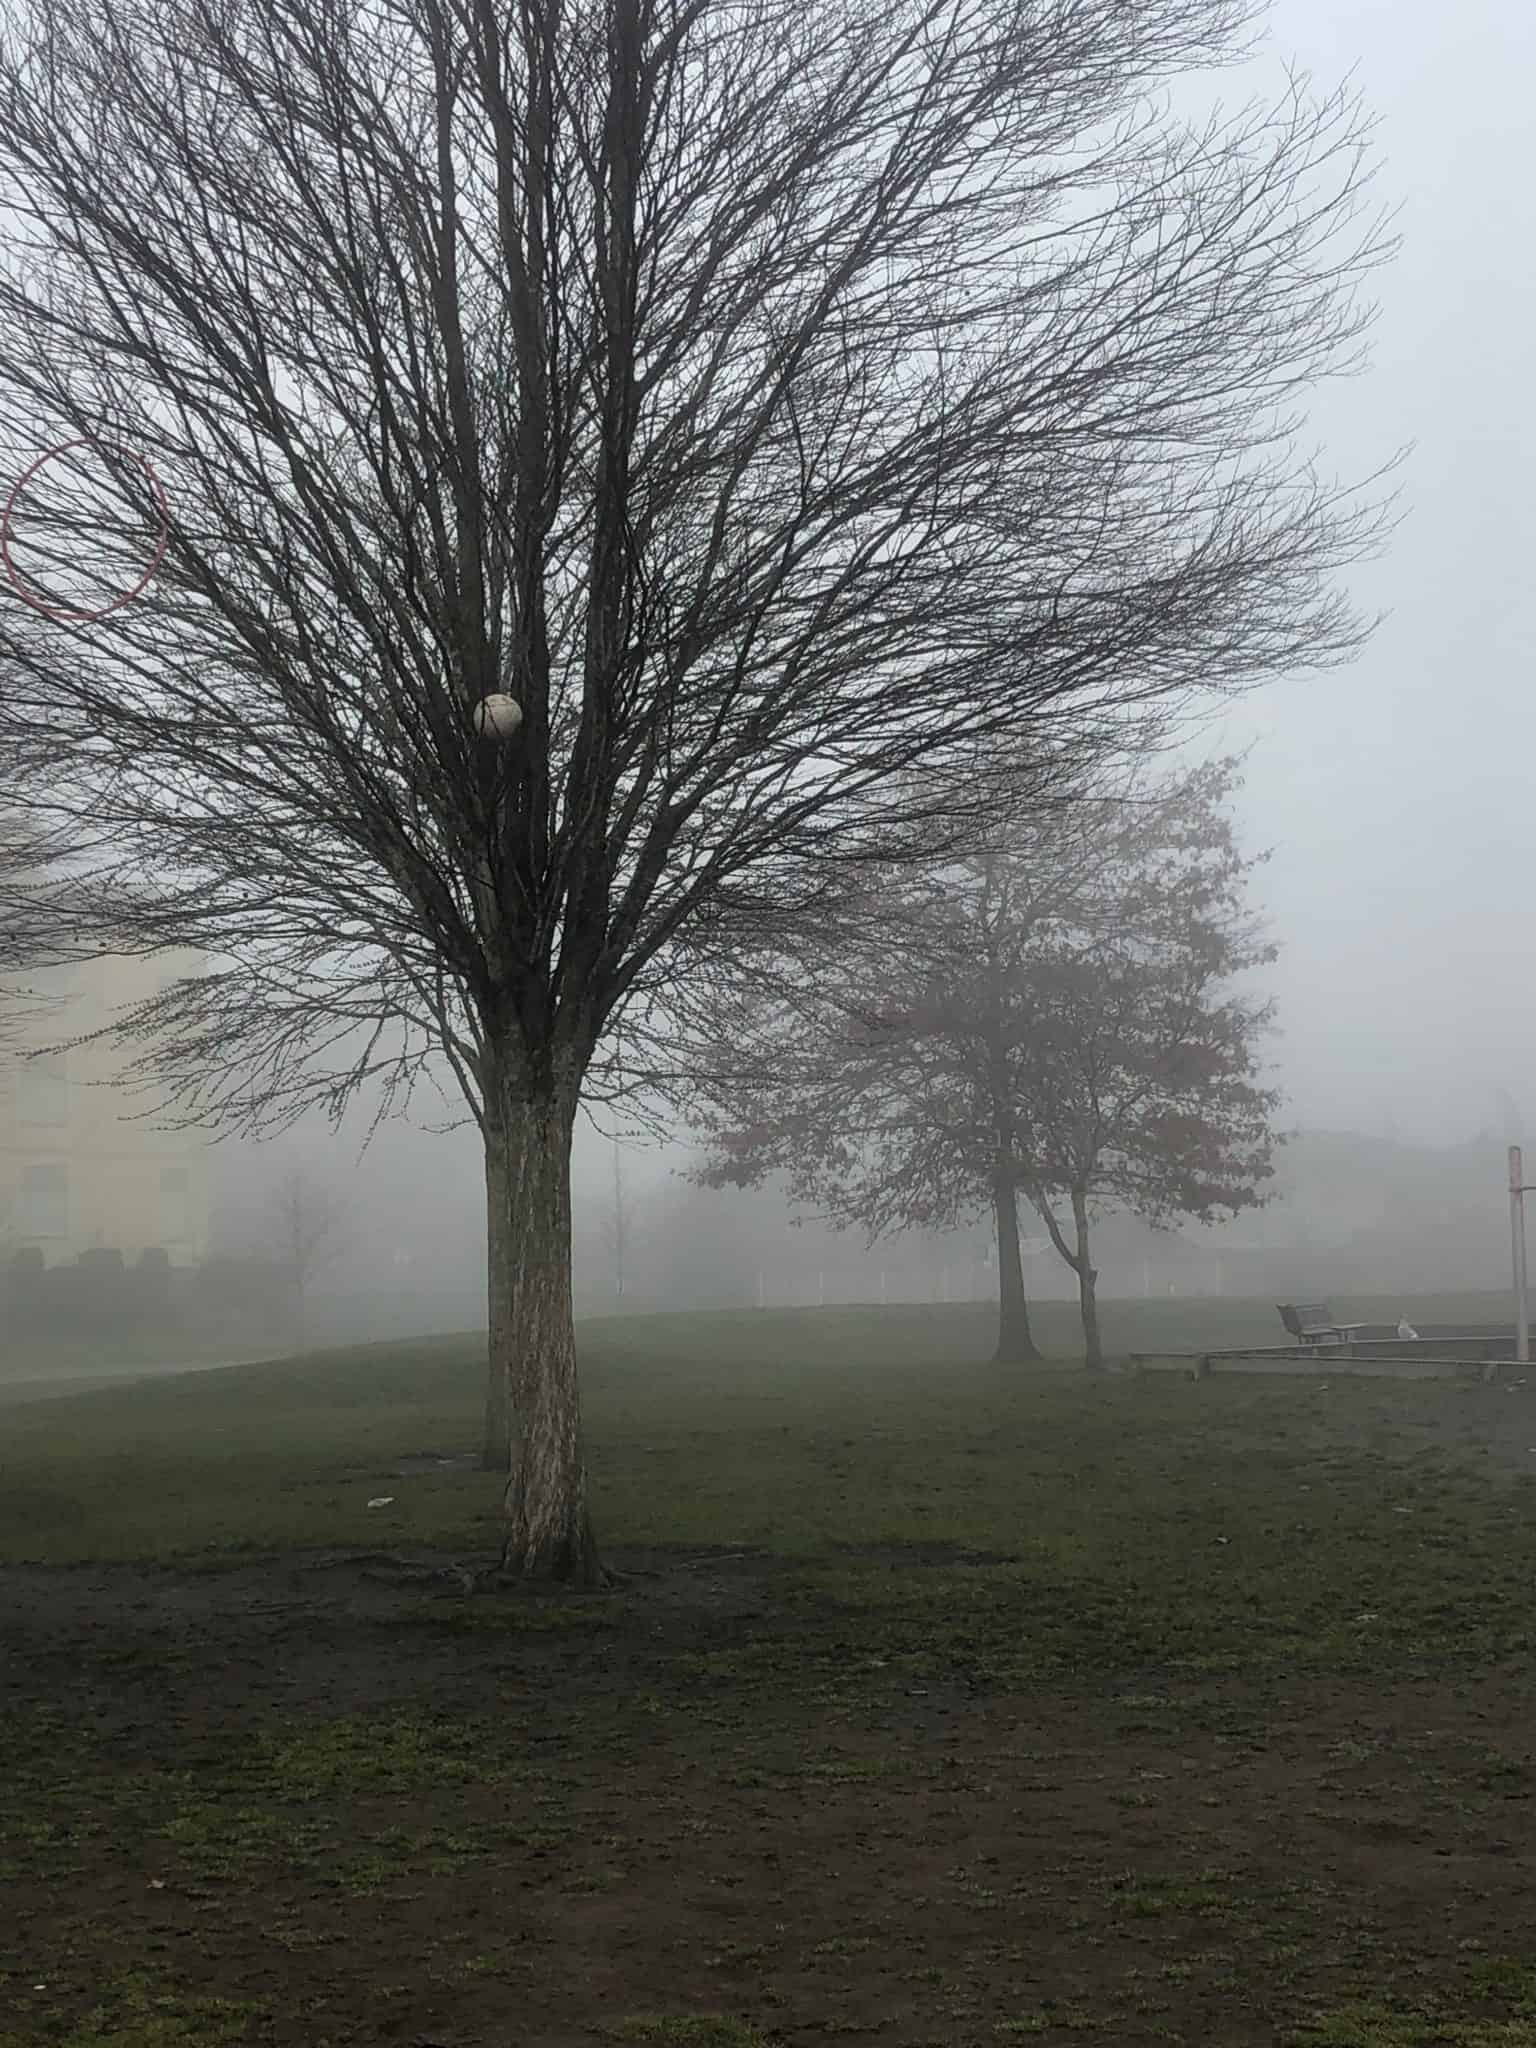 Risky Play Why Children Love It And >> Risky Play Getting Lost Found In The Fog Megan Zeni